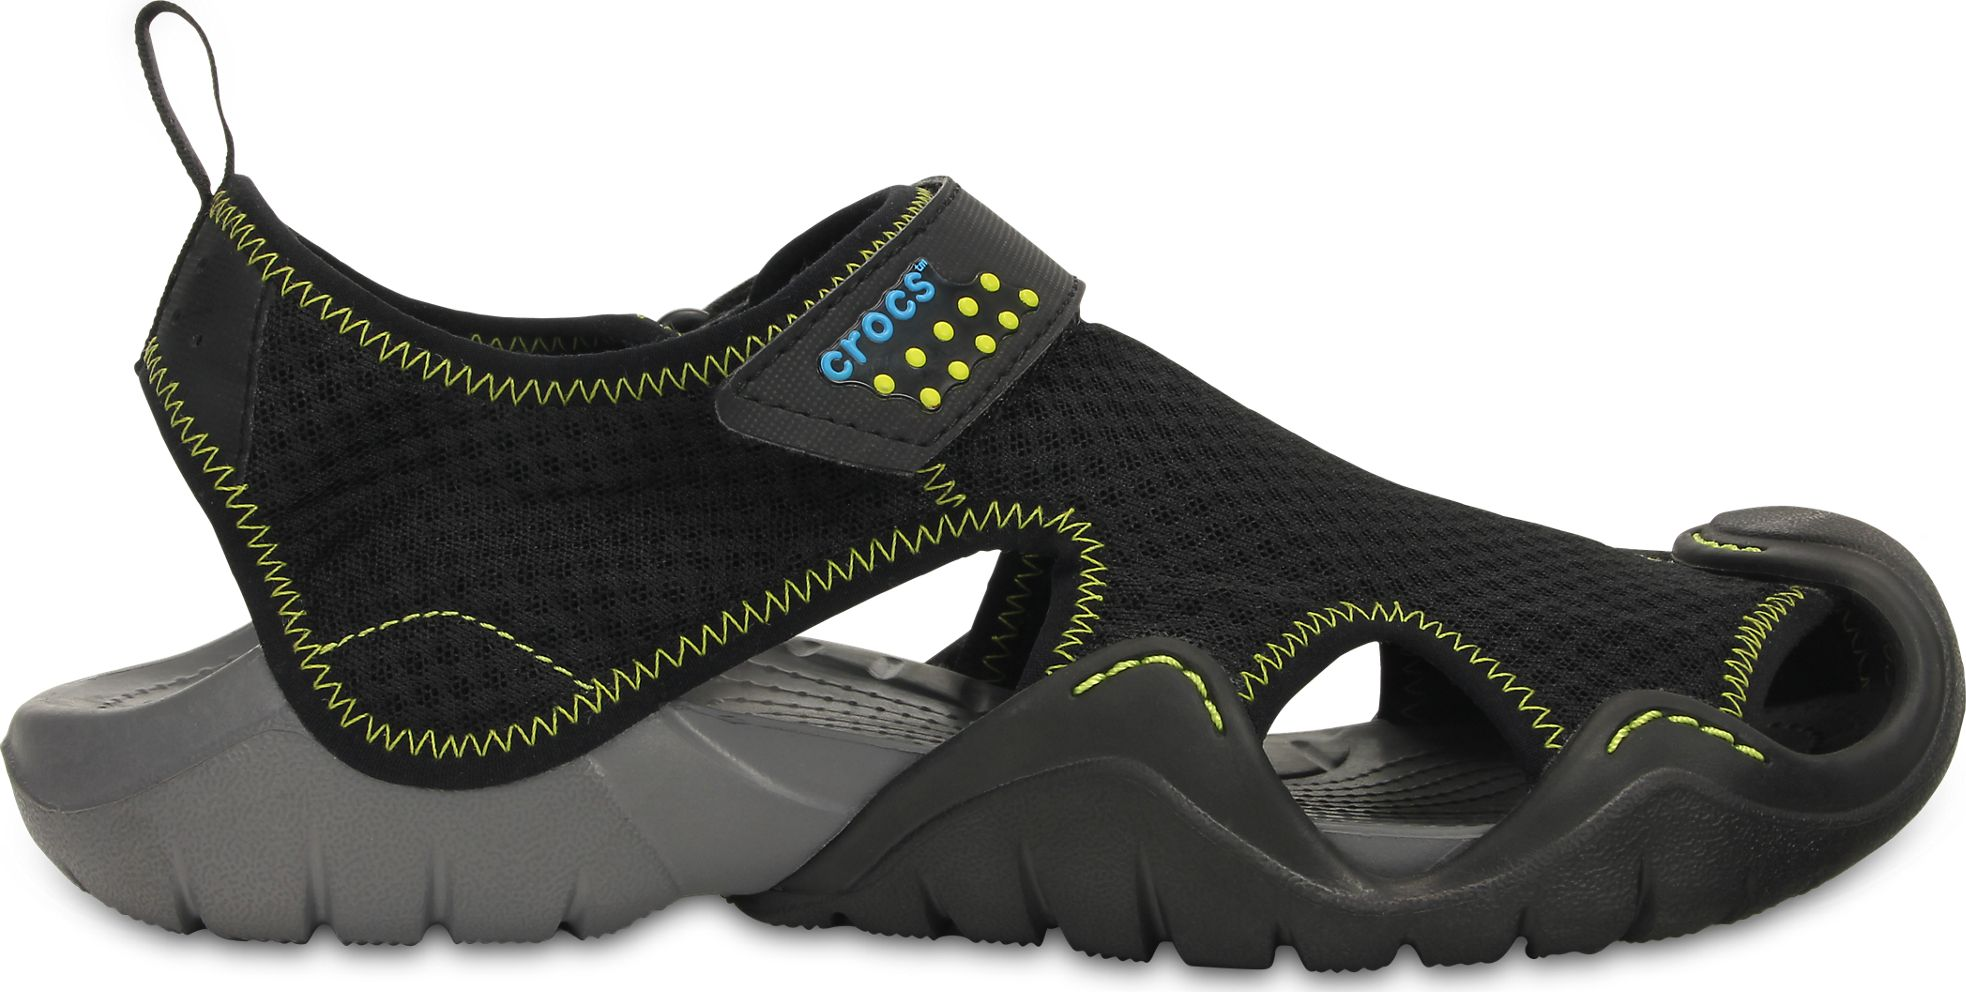 Crocs Swiftwater Sandal Open24 Ee